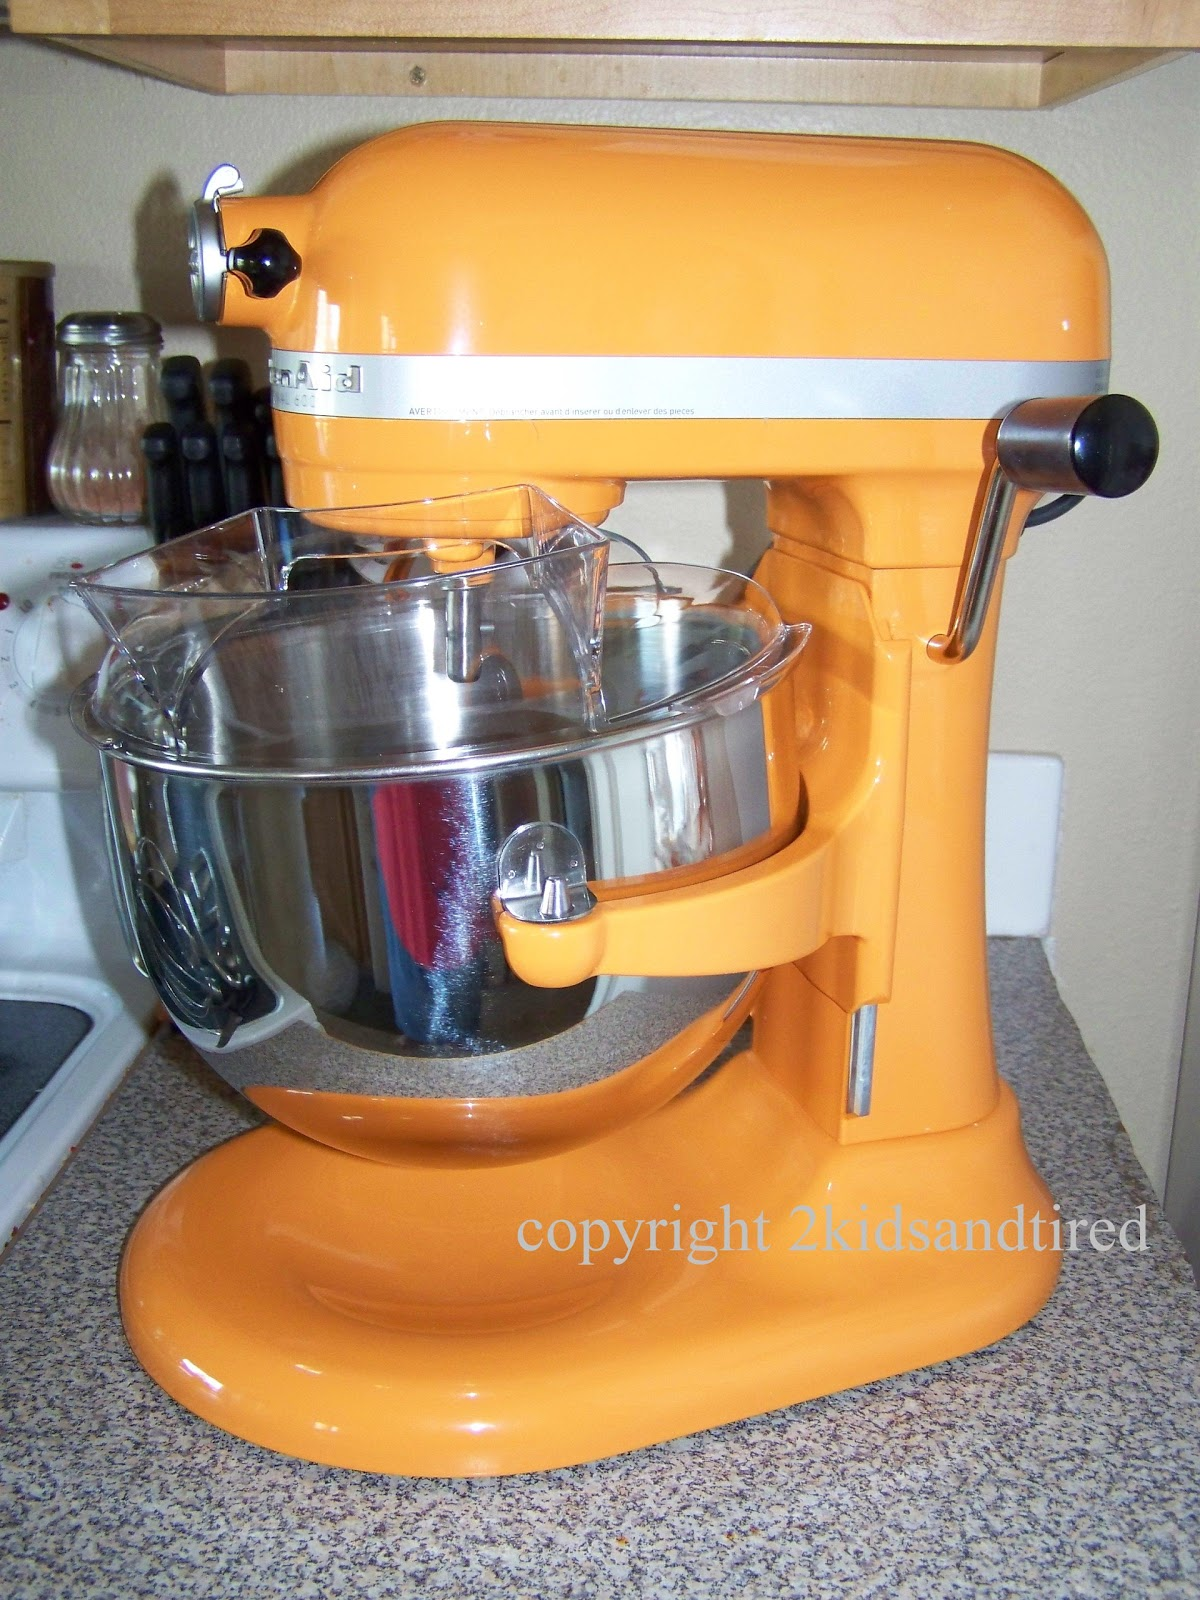 Just Like Home Toy Stand Mixer : Kids and tired cooks my new mixer